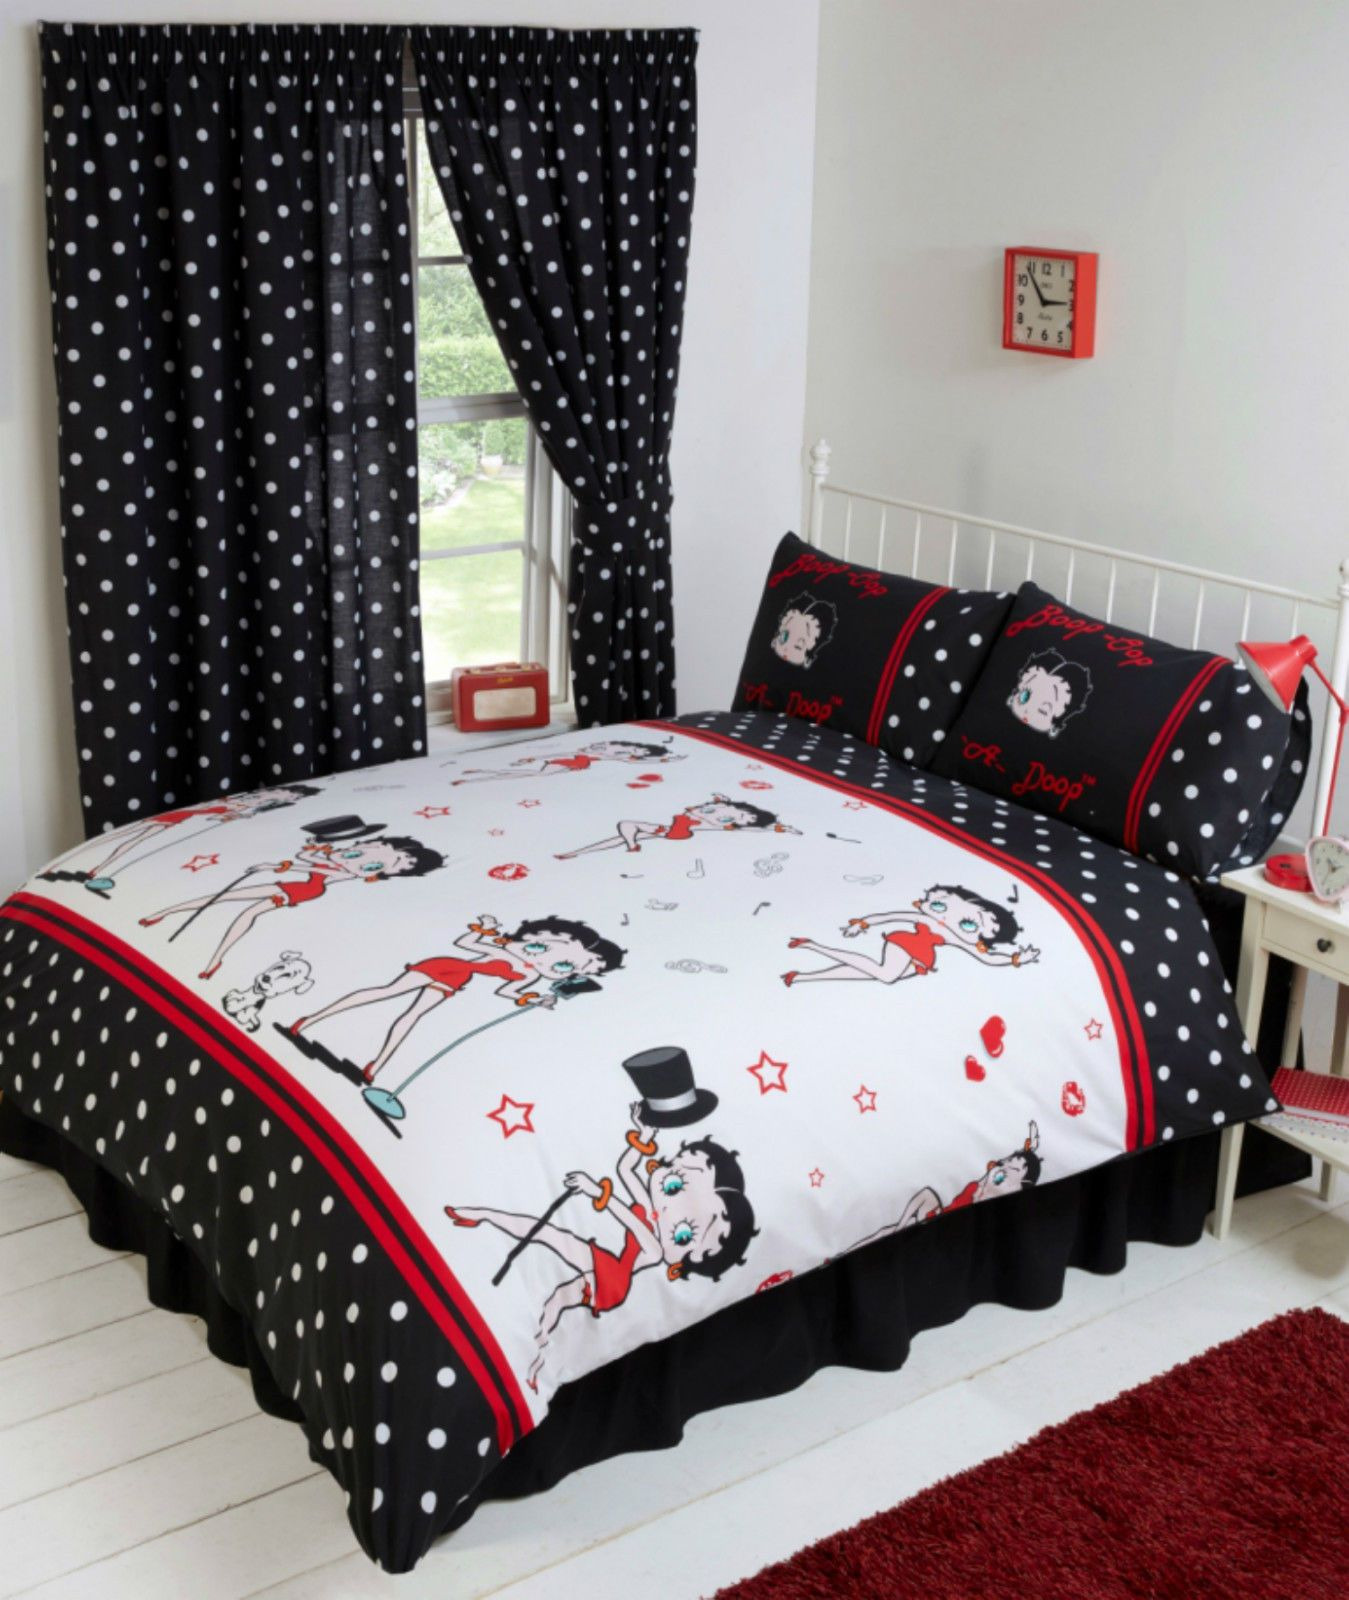 sofa bed covers affordable sets india betty boop bedroom reversible bedding duvet quilt cover ...